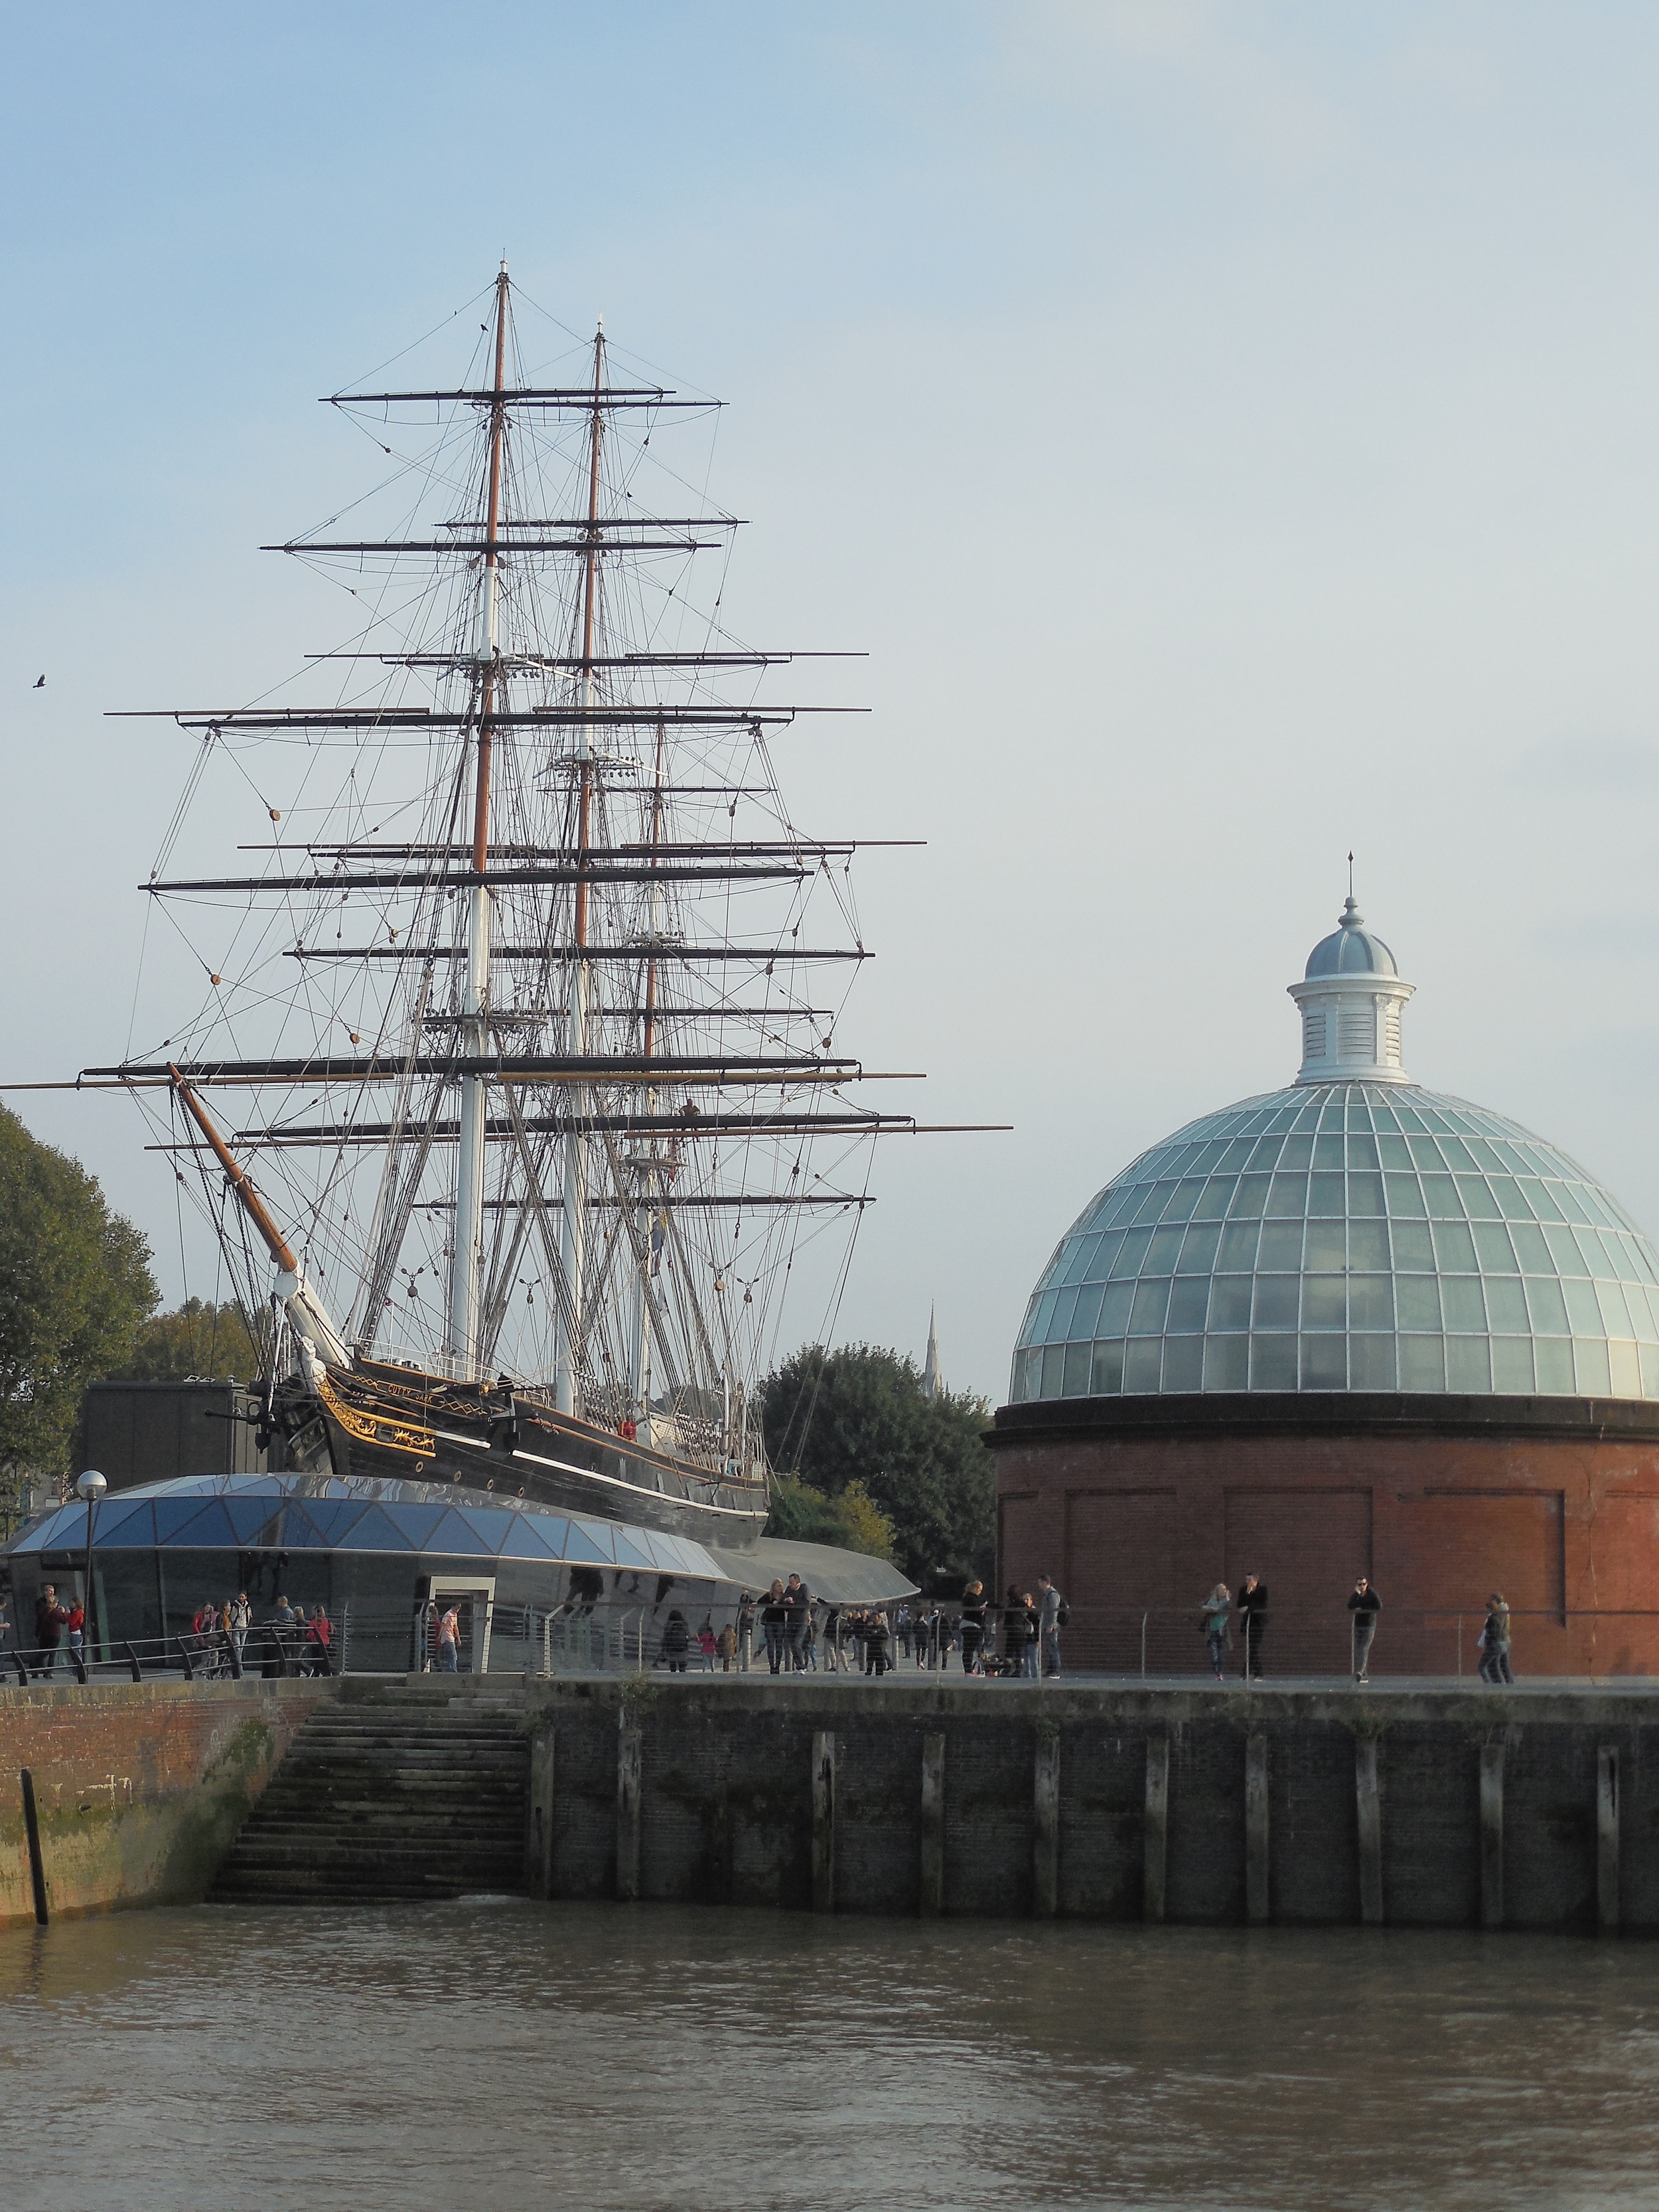 (Greenwich Pier: Cutty Sark, National Maritime Museum, Queen's House, Royal Naval College, Royal Observatory, Peter Harrison Planetarium, Greenwich Market)